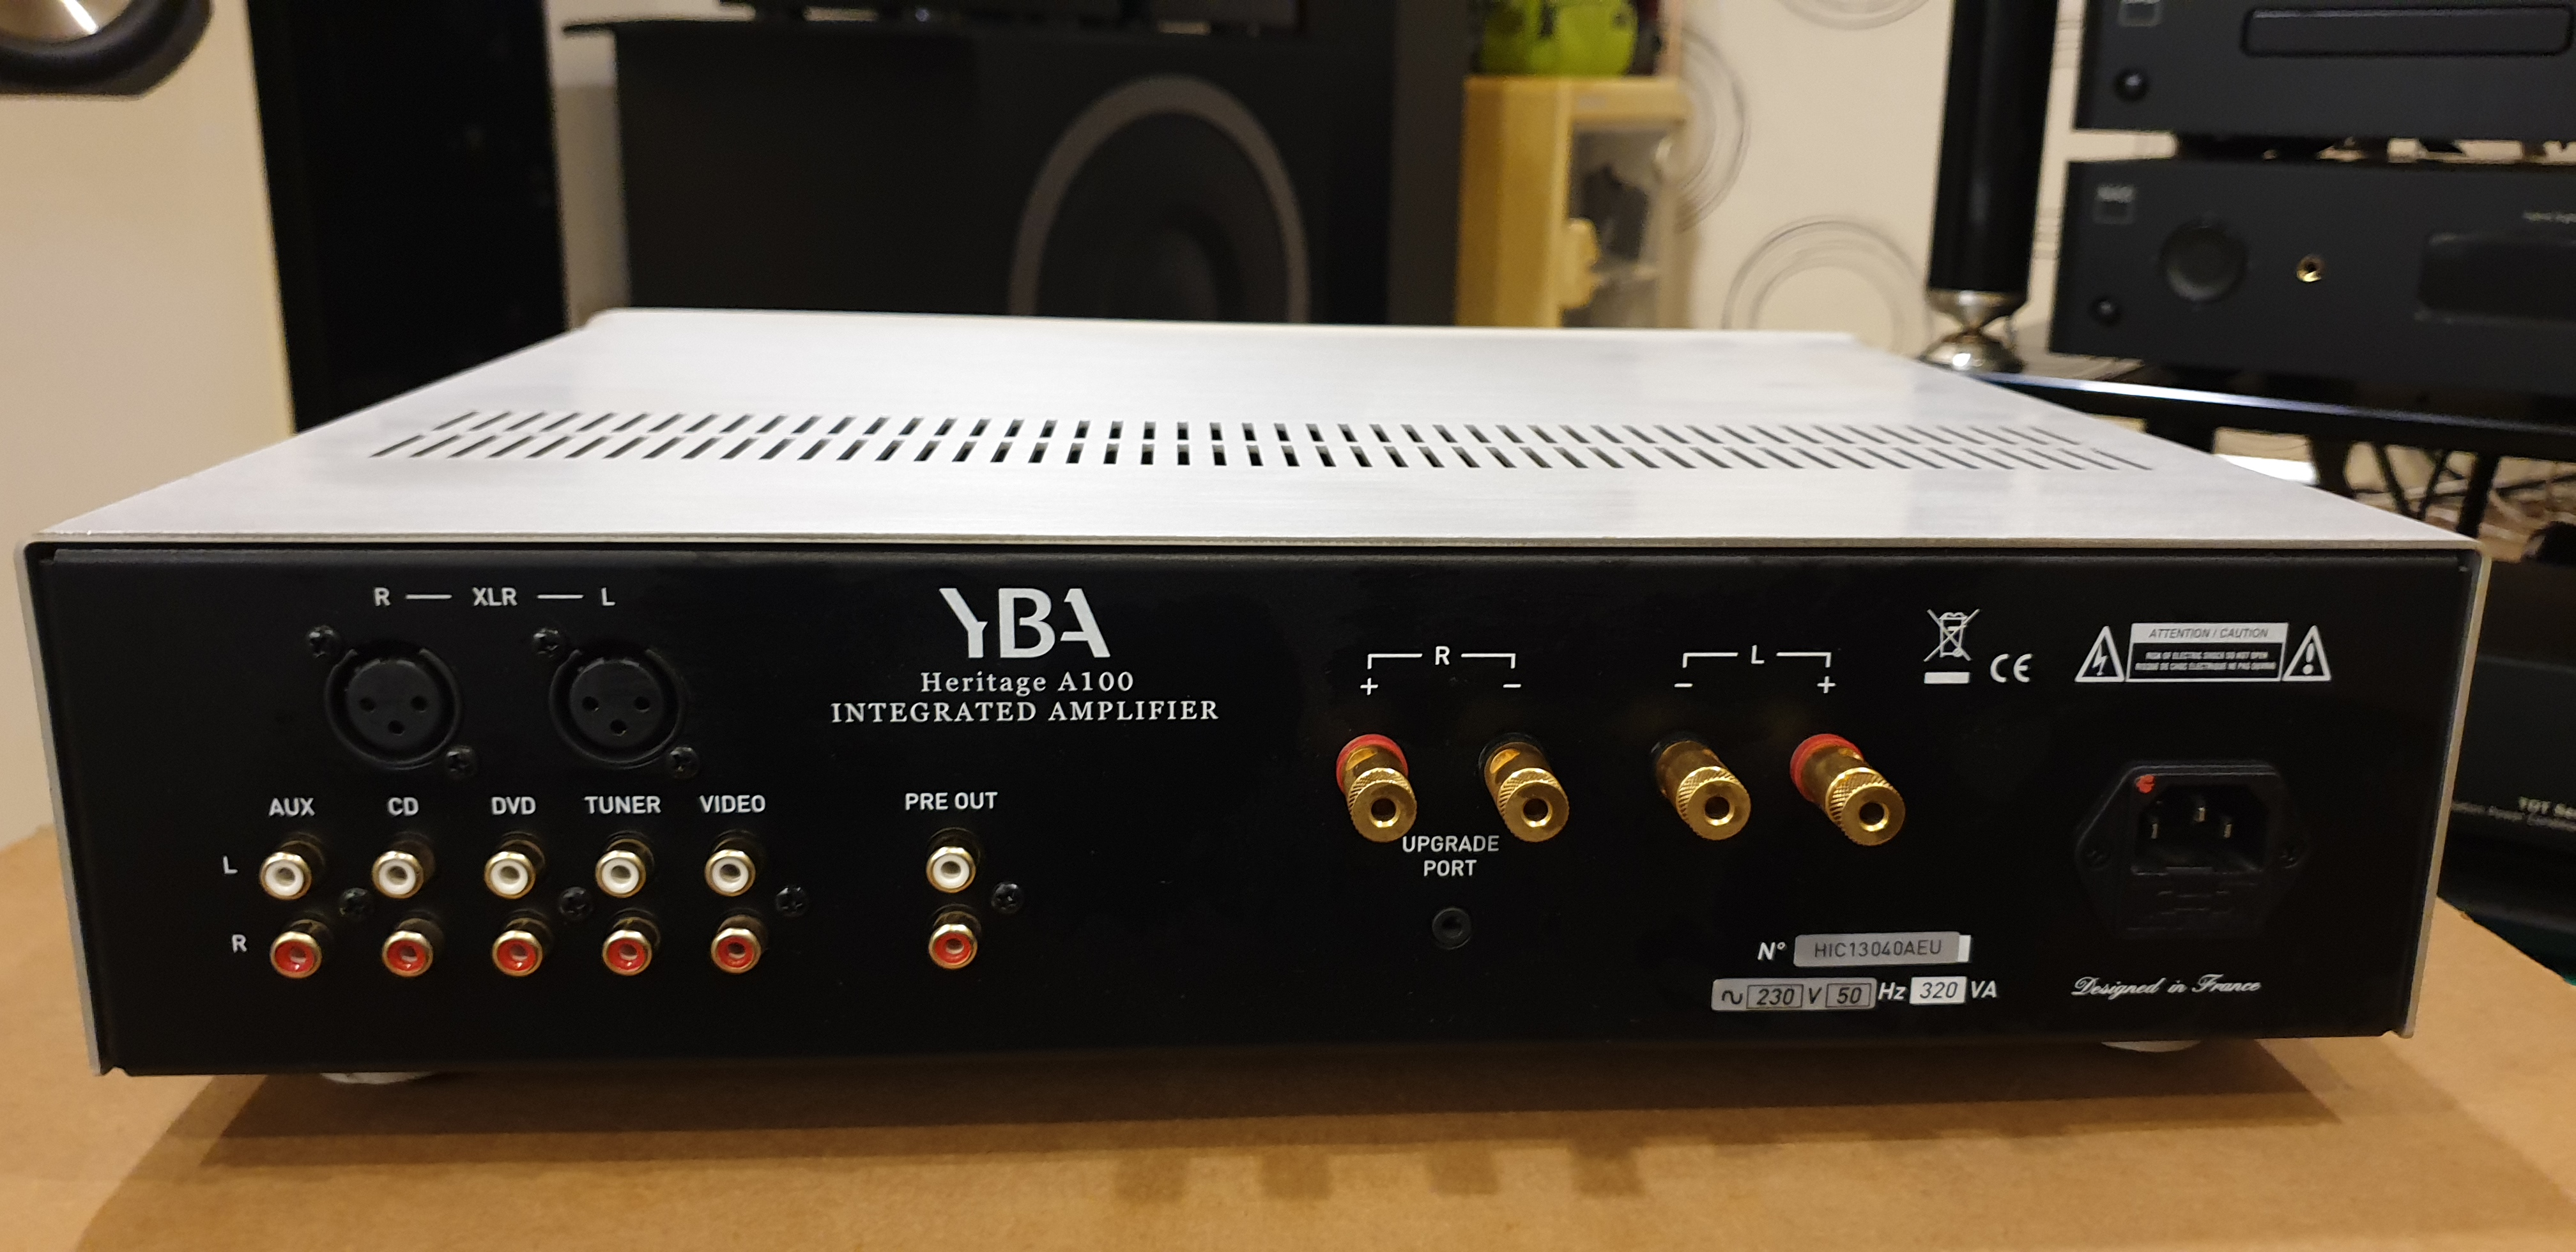 YBA Heritage A100 Integrated Amplifier (Used) 20191010_110353